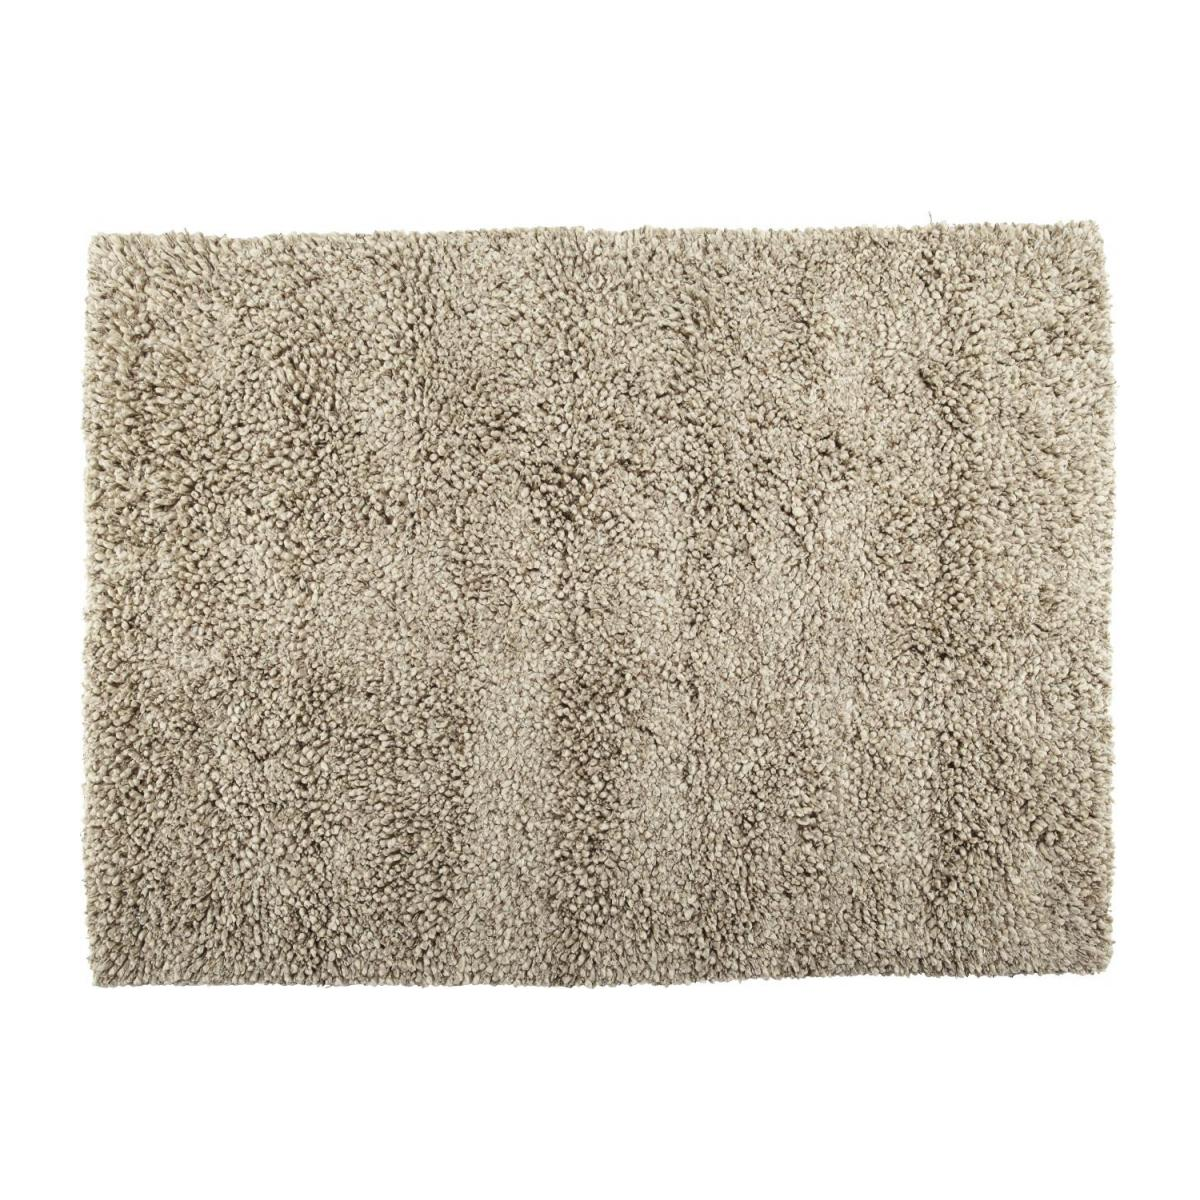 Wool carpet 70X240 n°1